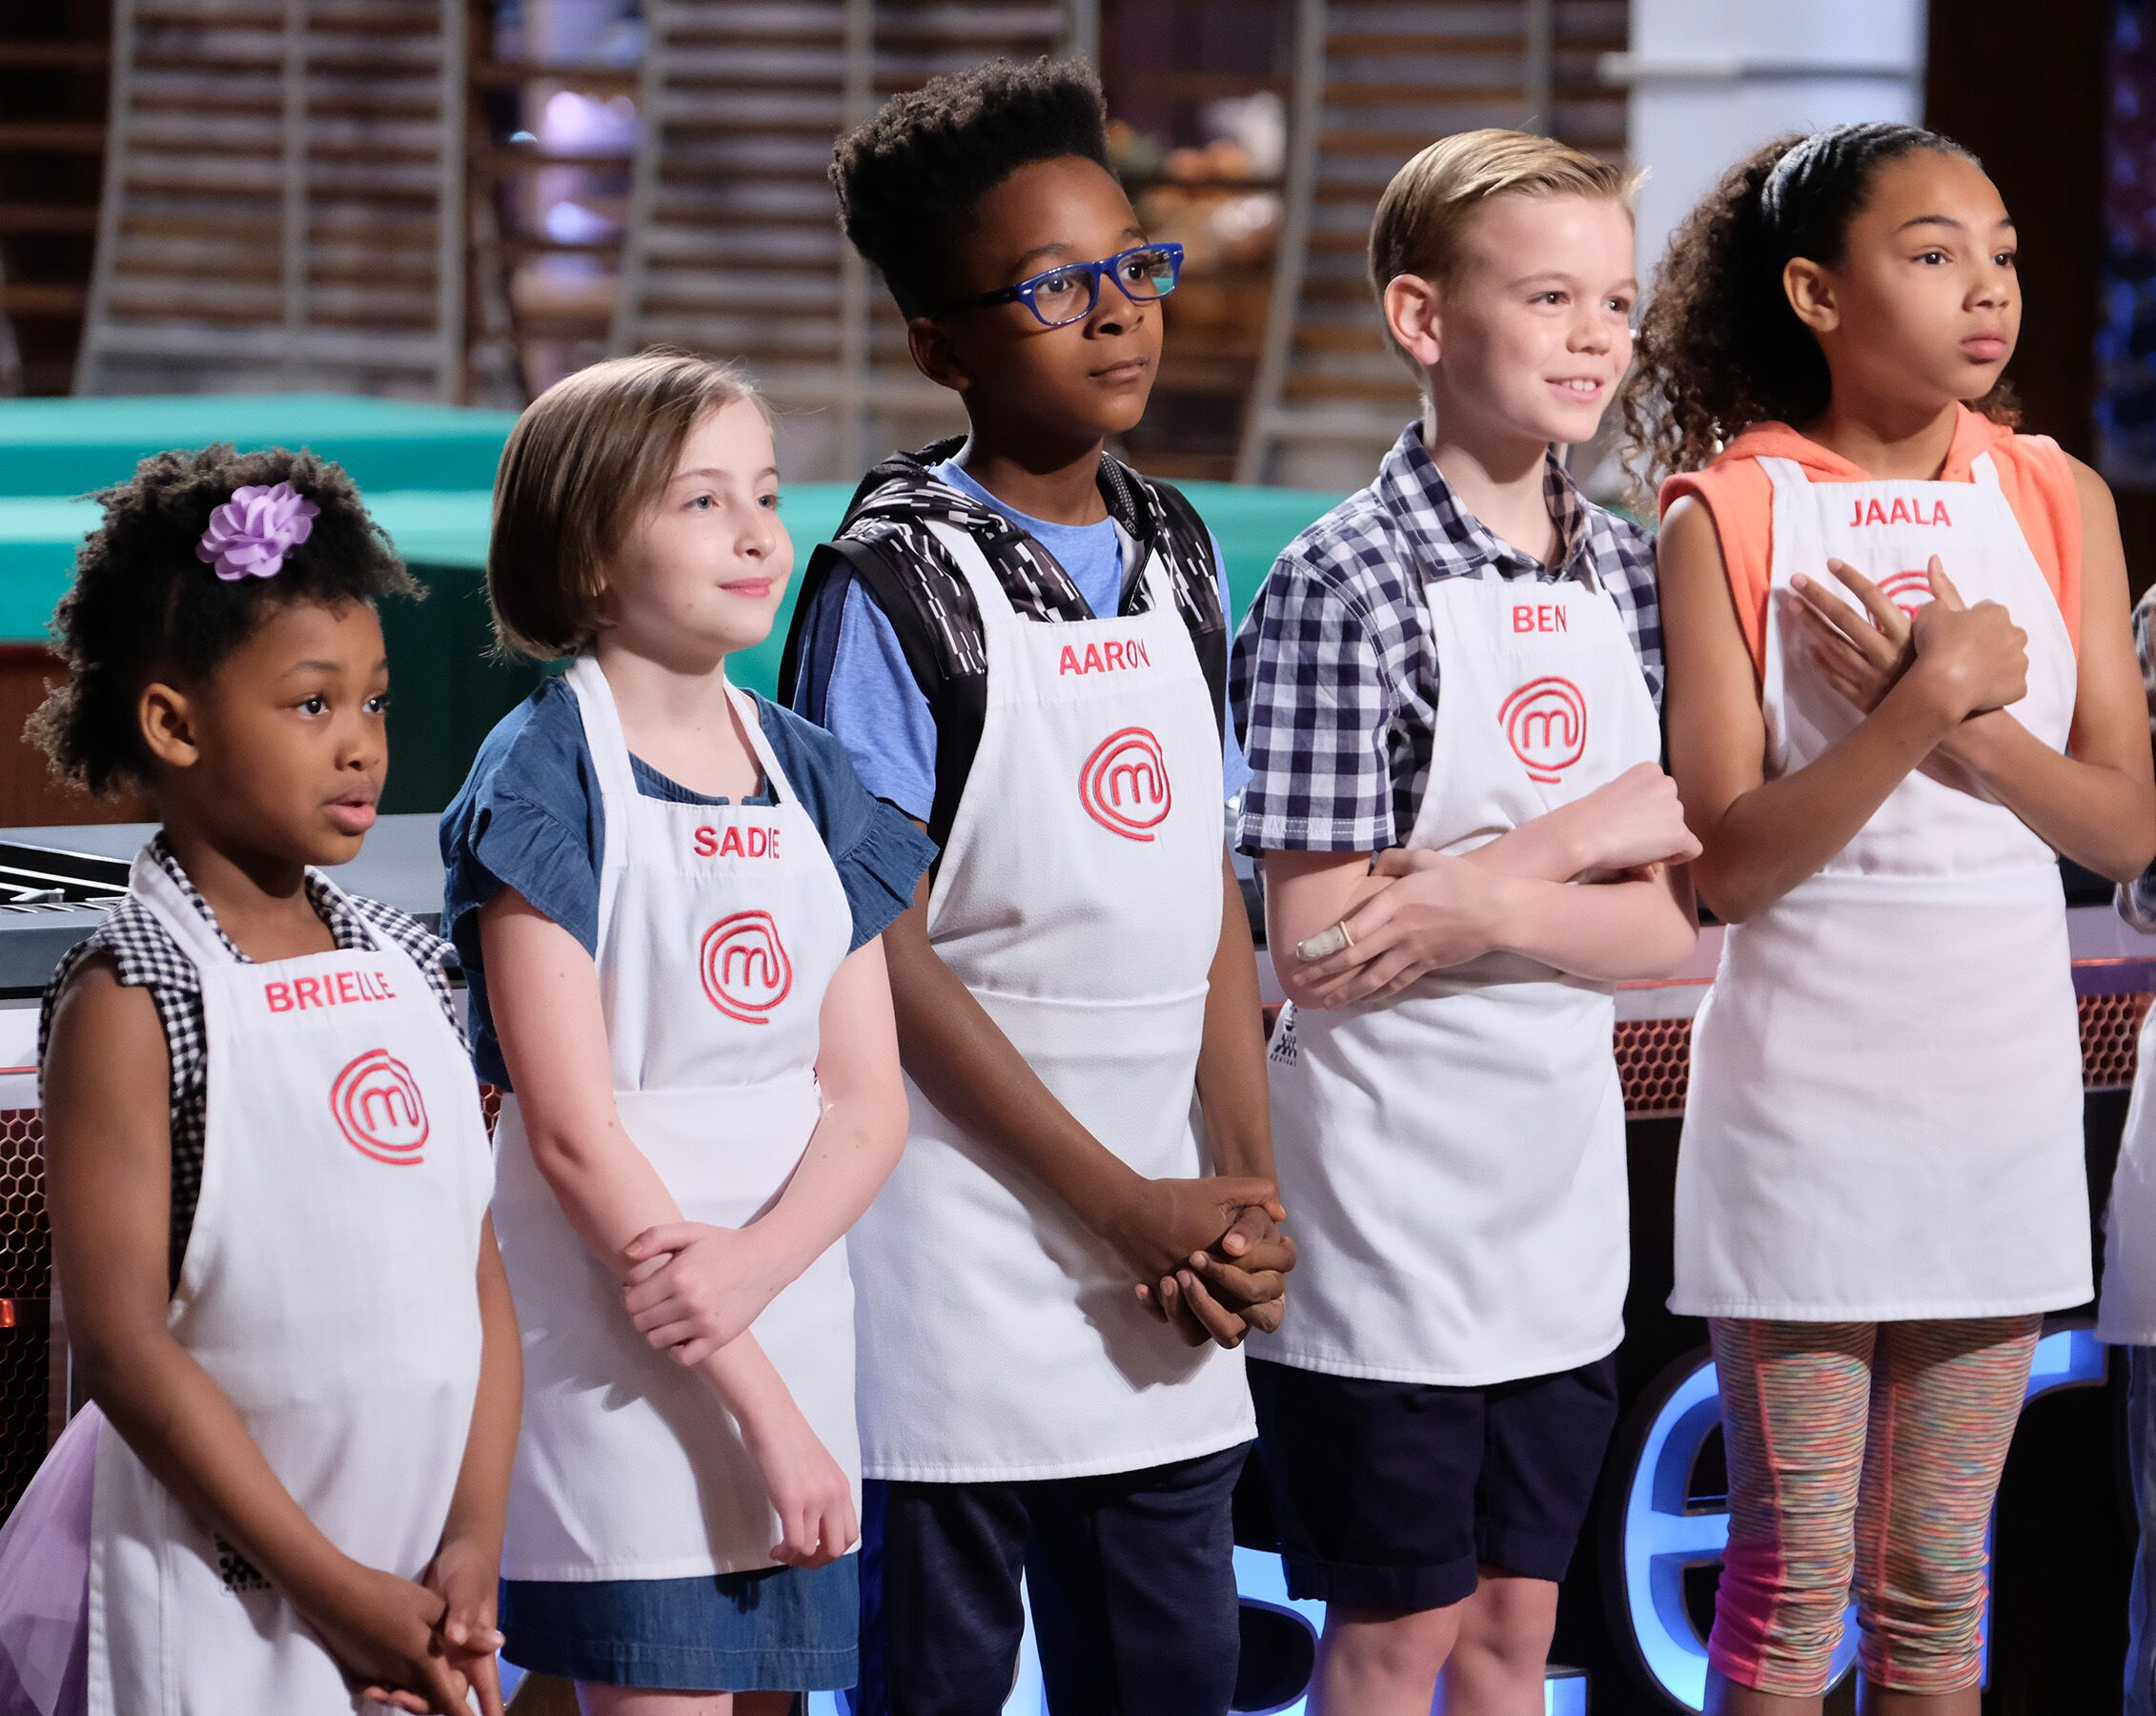 masterchef - photo #15